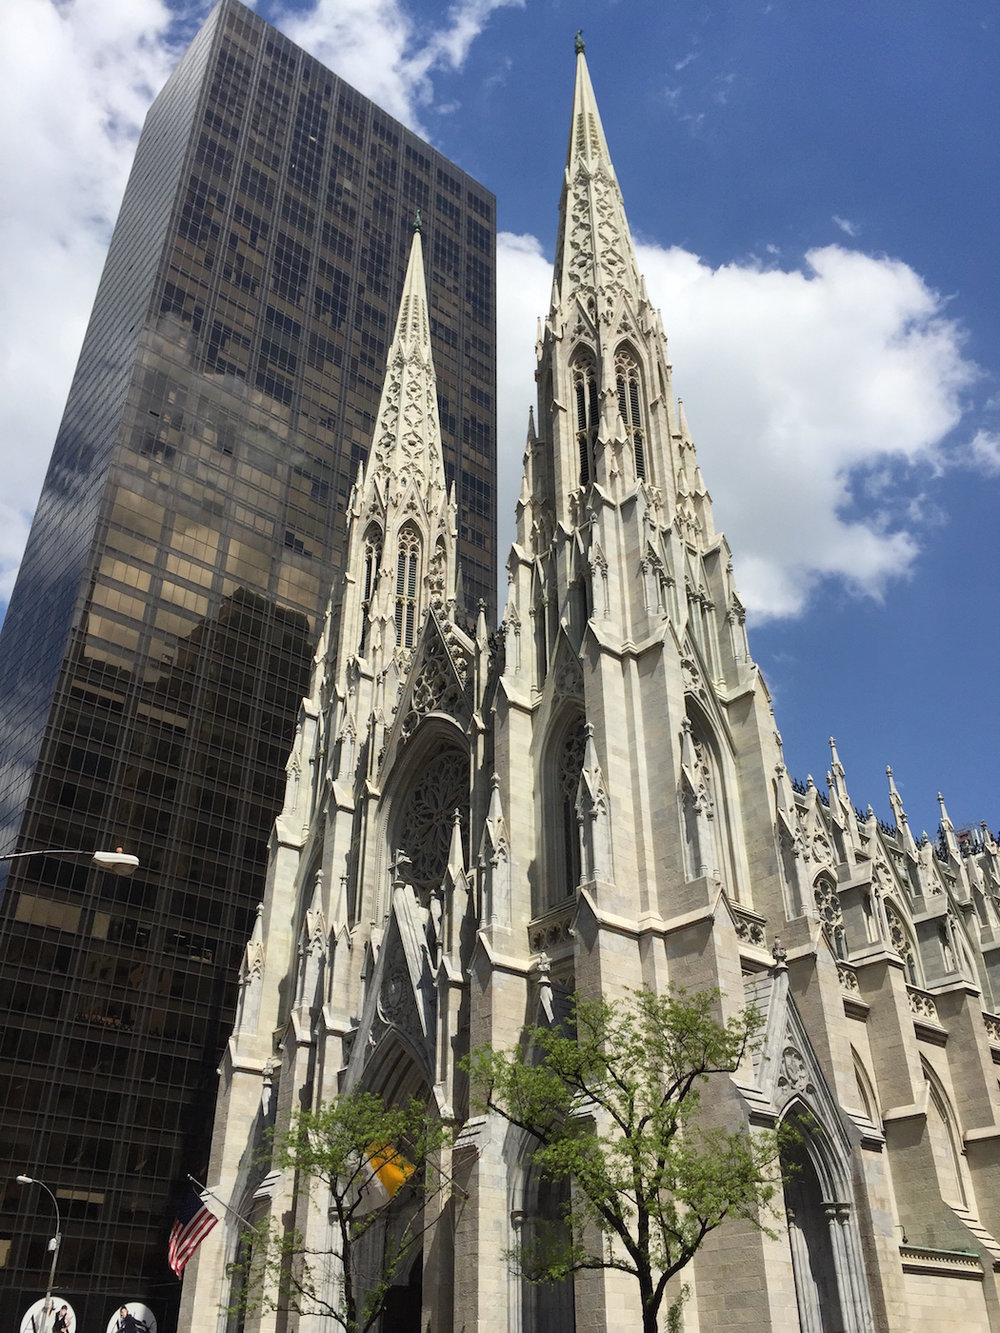 - St. Patrick's on 5th Avenue